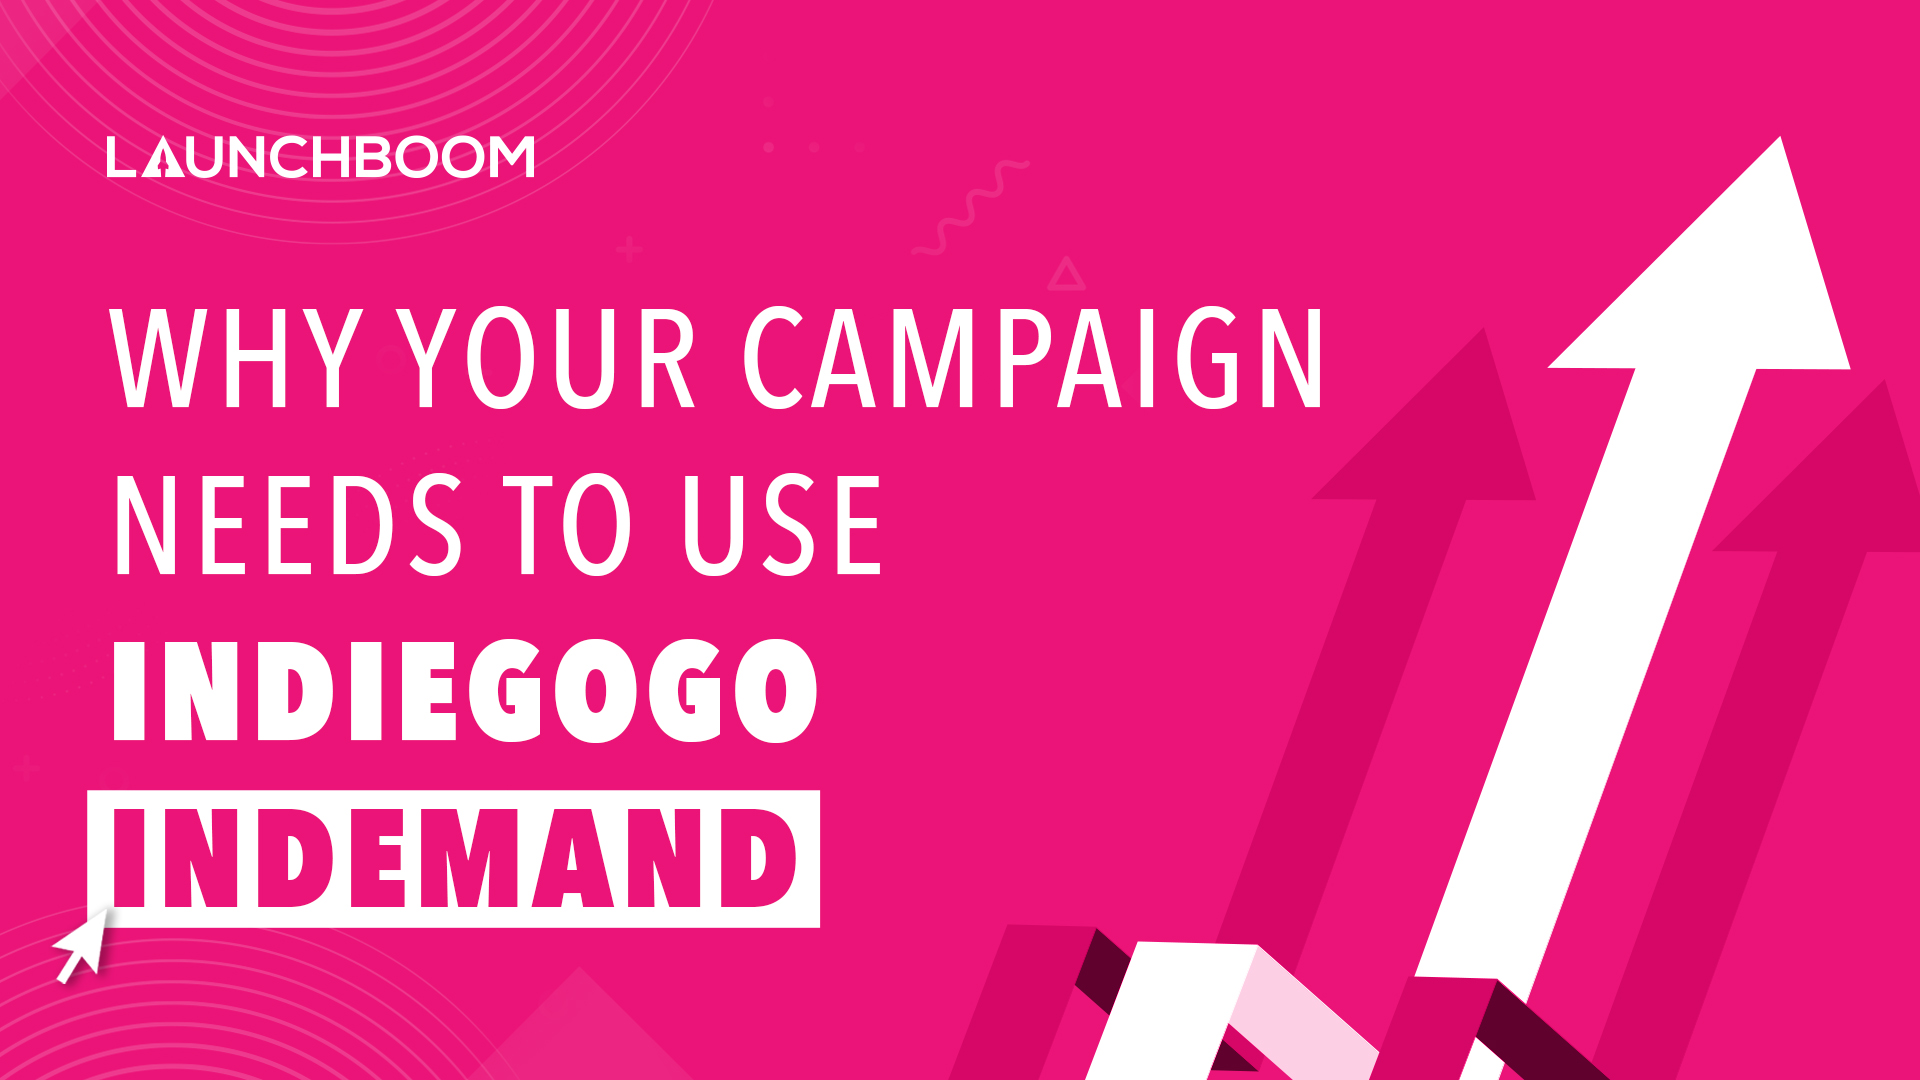 Why Your Campaign Needs to Use Indiegogo InDemand